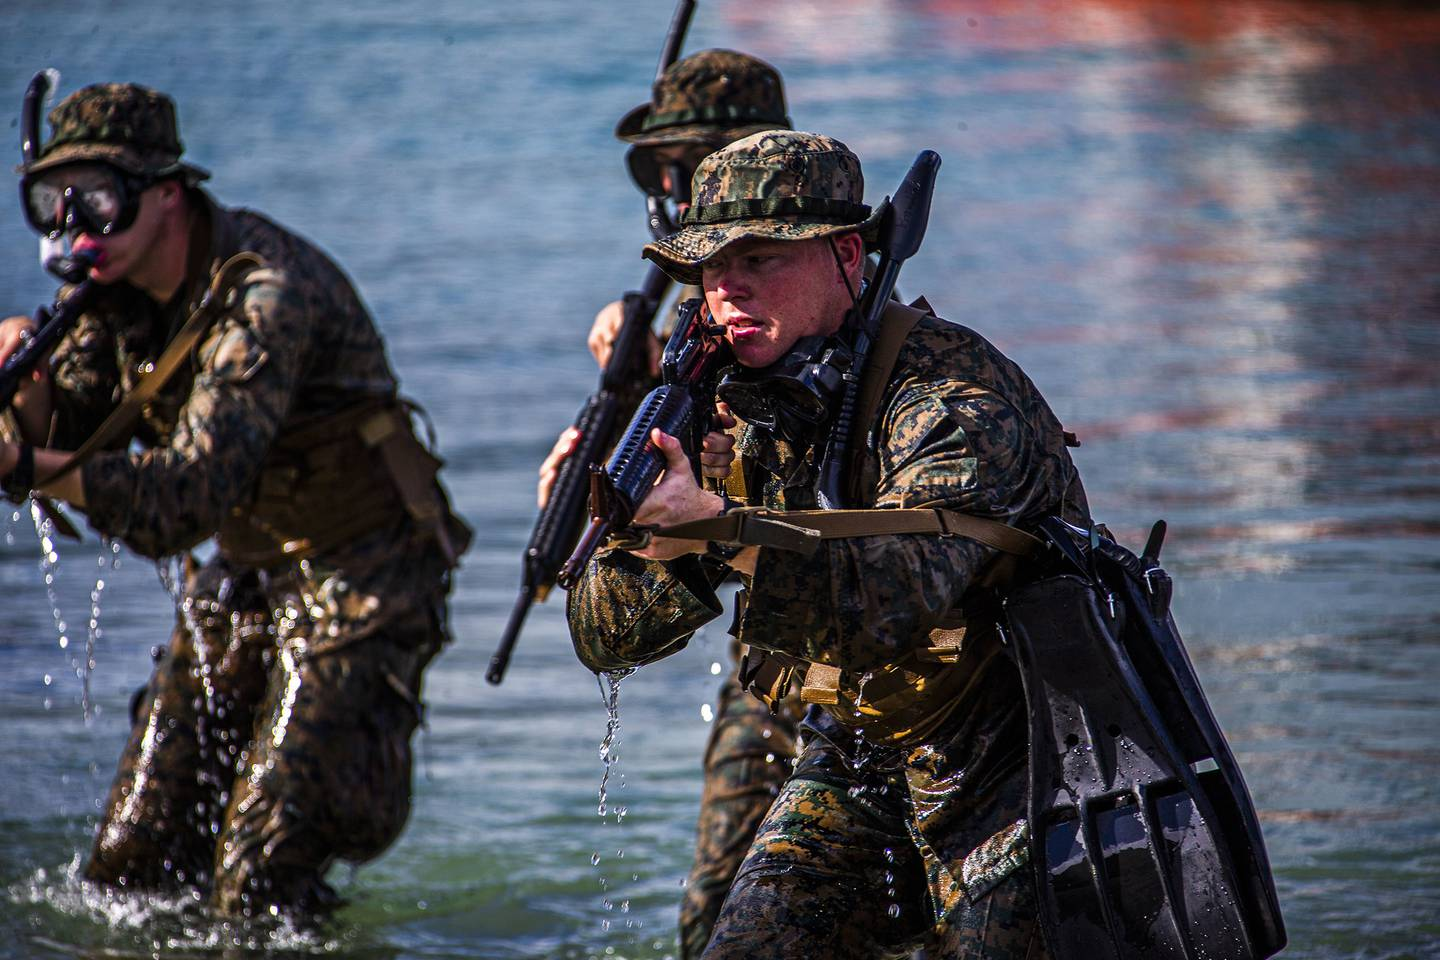 Marines hit the shore during an amphibious assault exercise on Marine Corps Base Hawaii, April 28, 2020.